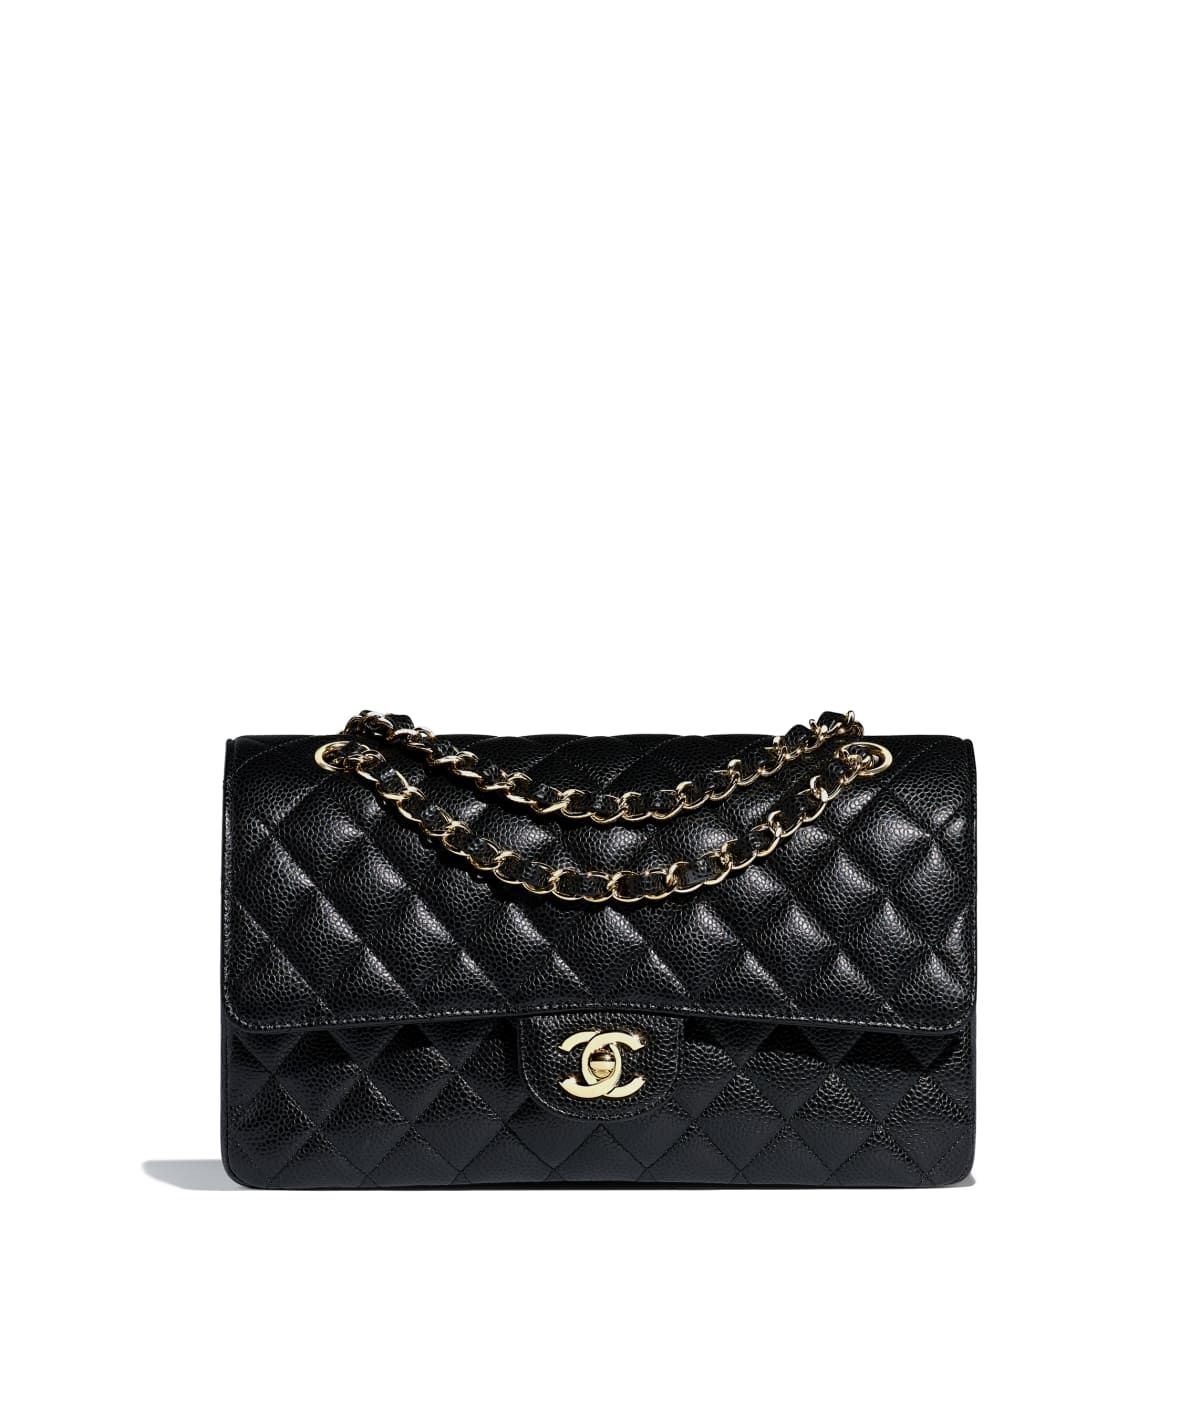 fa8e2e7d44f6 Handbags of the Spring-Summer 2019 Pre-Collection CHANEL Fashion collection  : Classic Handbag, grained calfskin & gold-tone metal, black on the CHANEL  ...